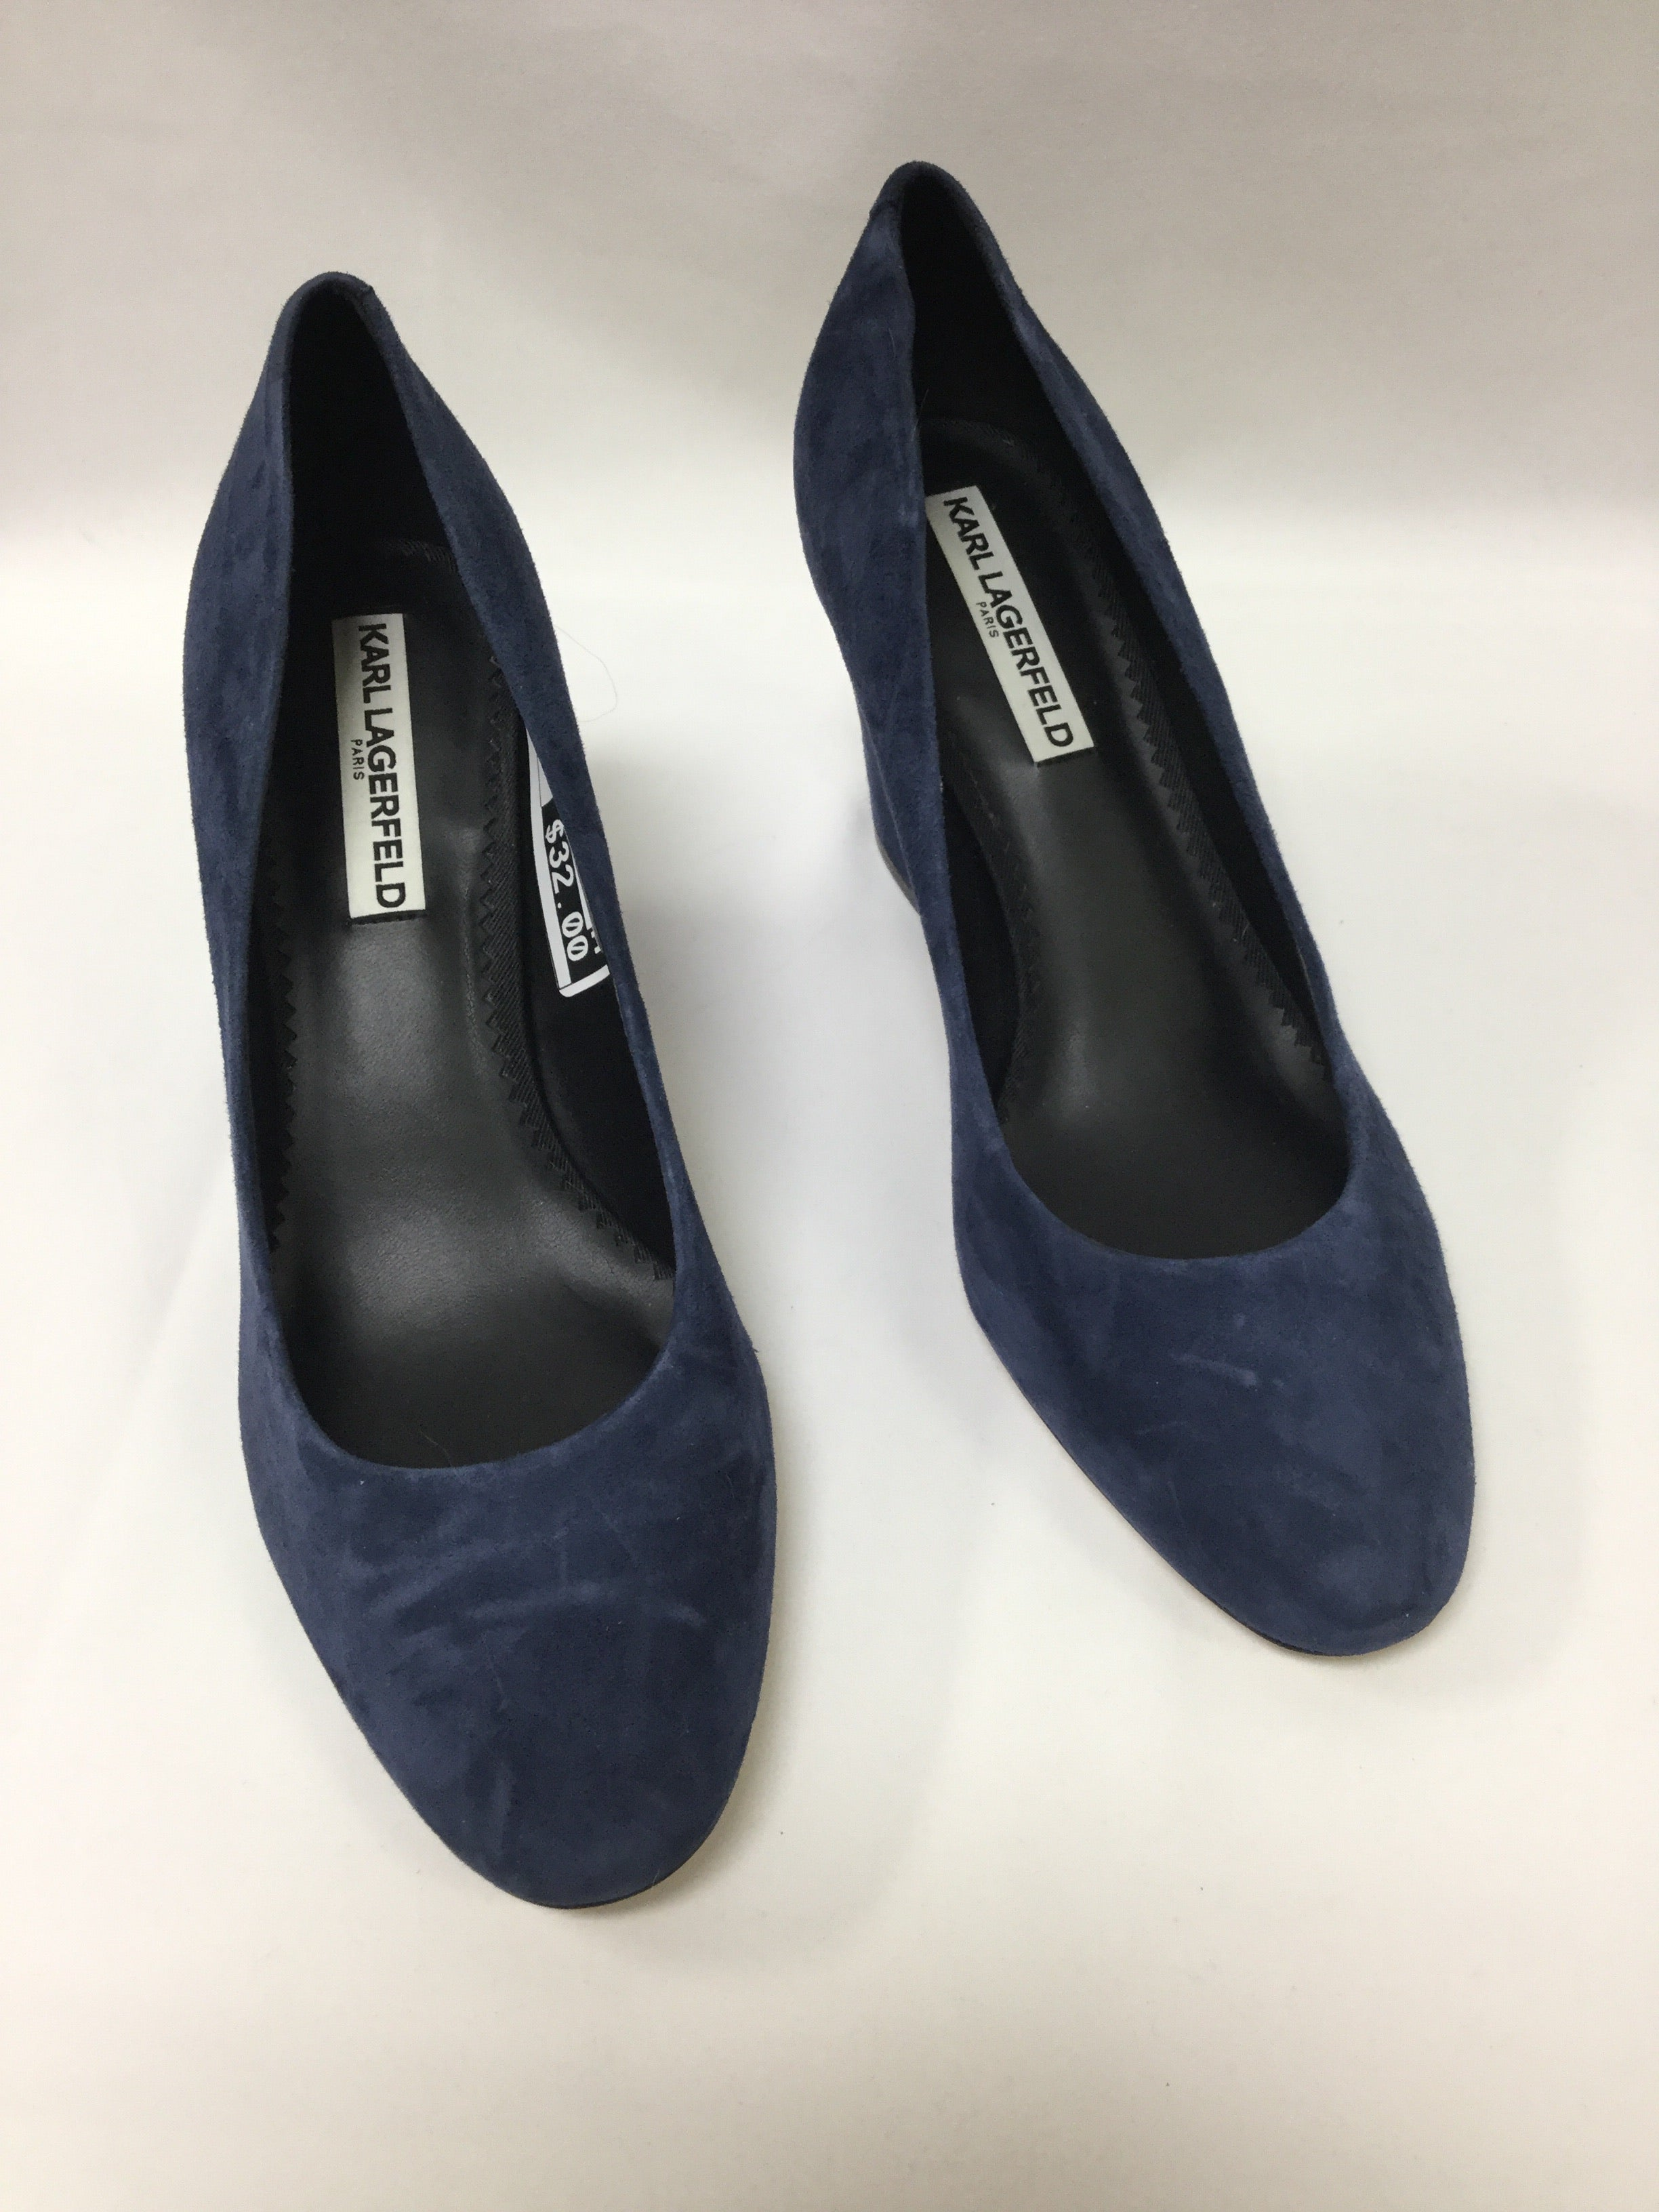 Primary Photo - BRAND: KARL LAGERFELD <BR>STYLE: SHOES HIGH HEEL <BR>COLOR: BLUE <BR>SIZE: 9 <BR>SKU: 155-15599-233708